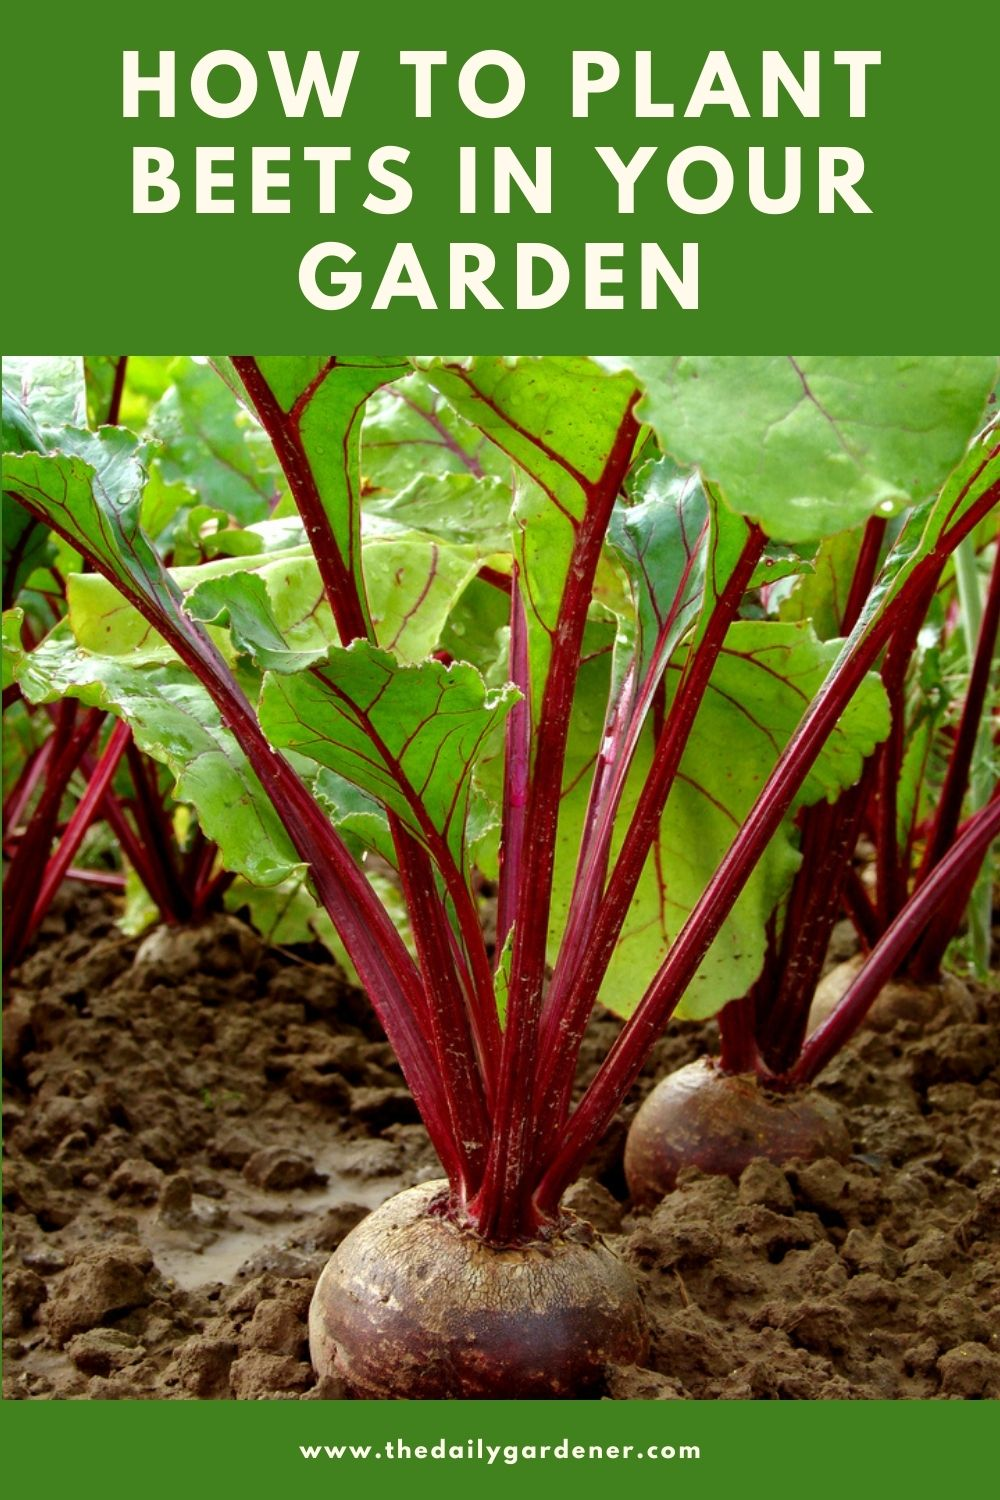 How to Plant Beets in Your Garden (Tricks to Care!) 2